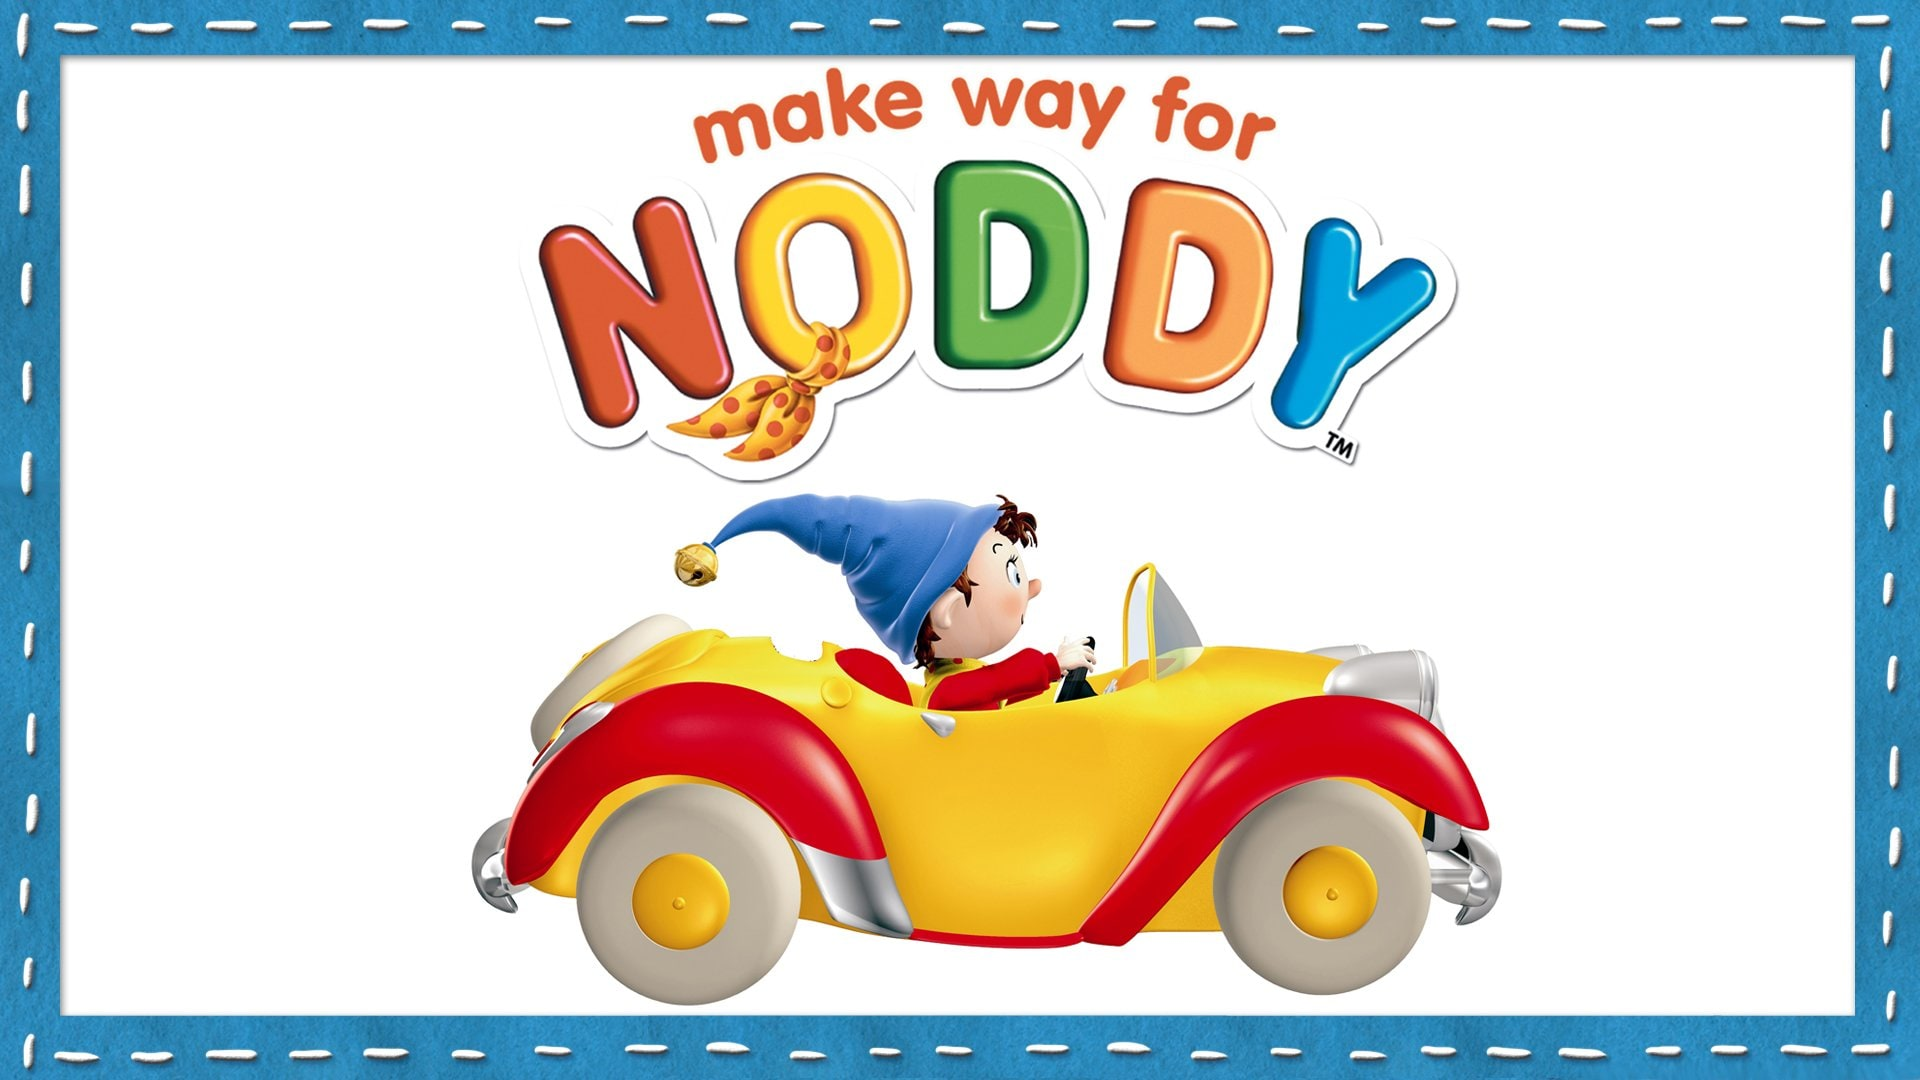 Good Neighbor Noddy